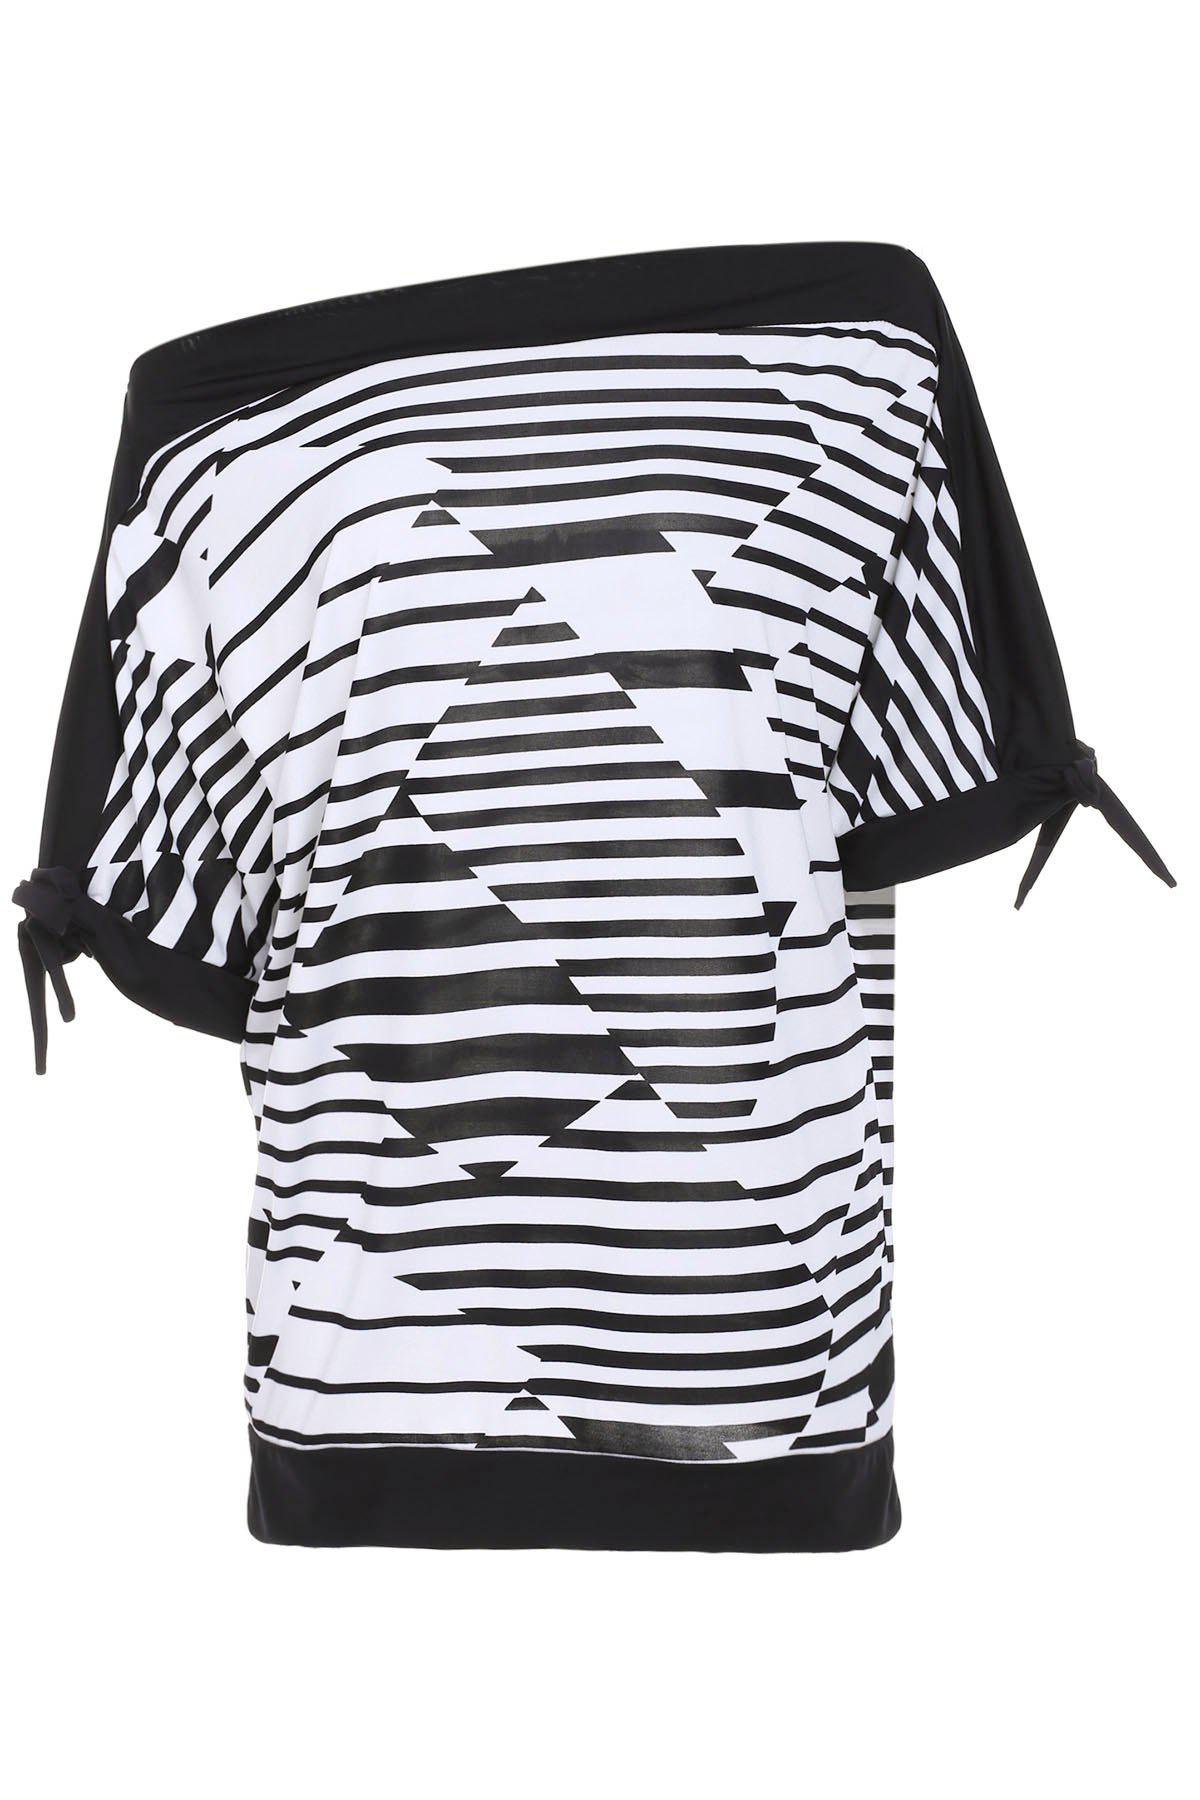 Casual Striped Short Sleeve Women's Plus Size T-Shirt - BLACK XL